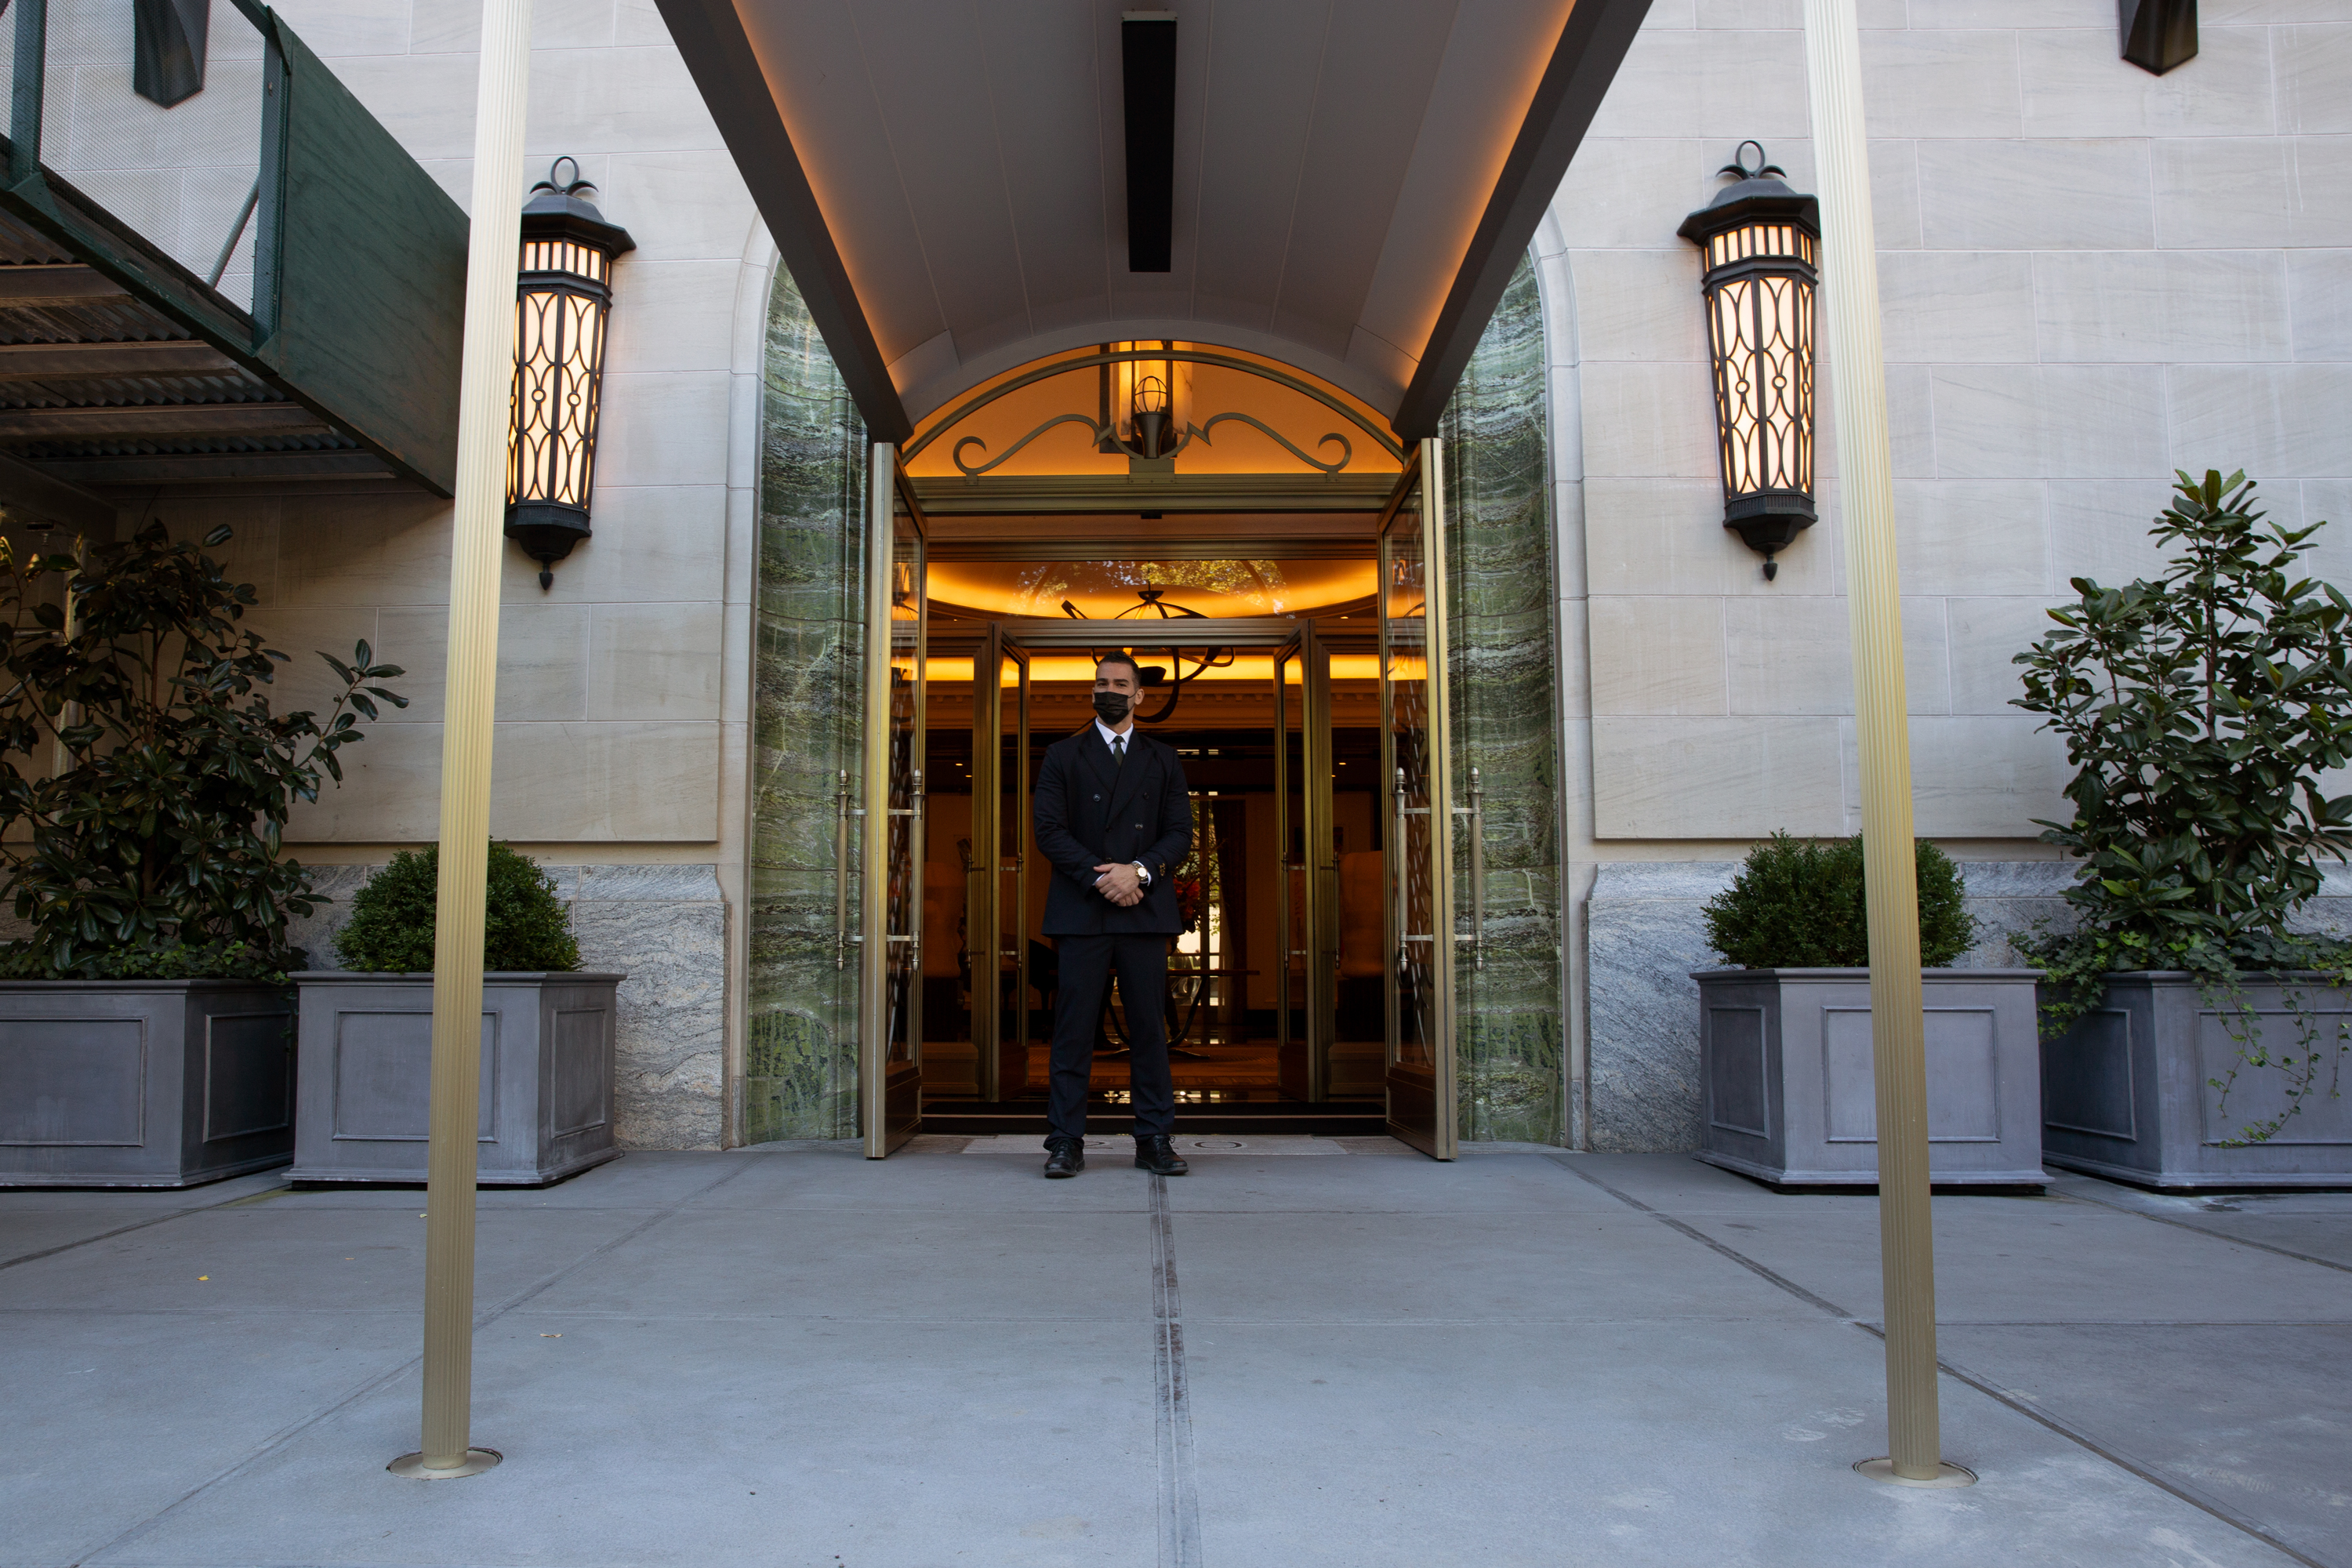 The entry to 220 Central Park South, Oct. 8, 2020.